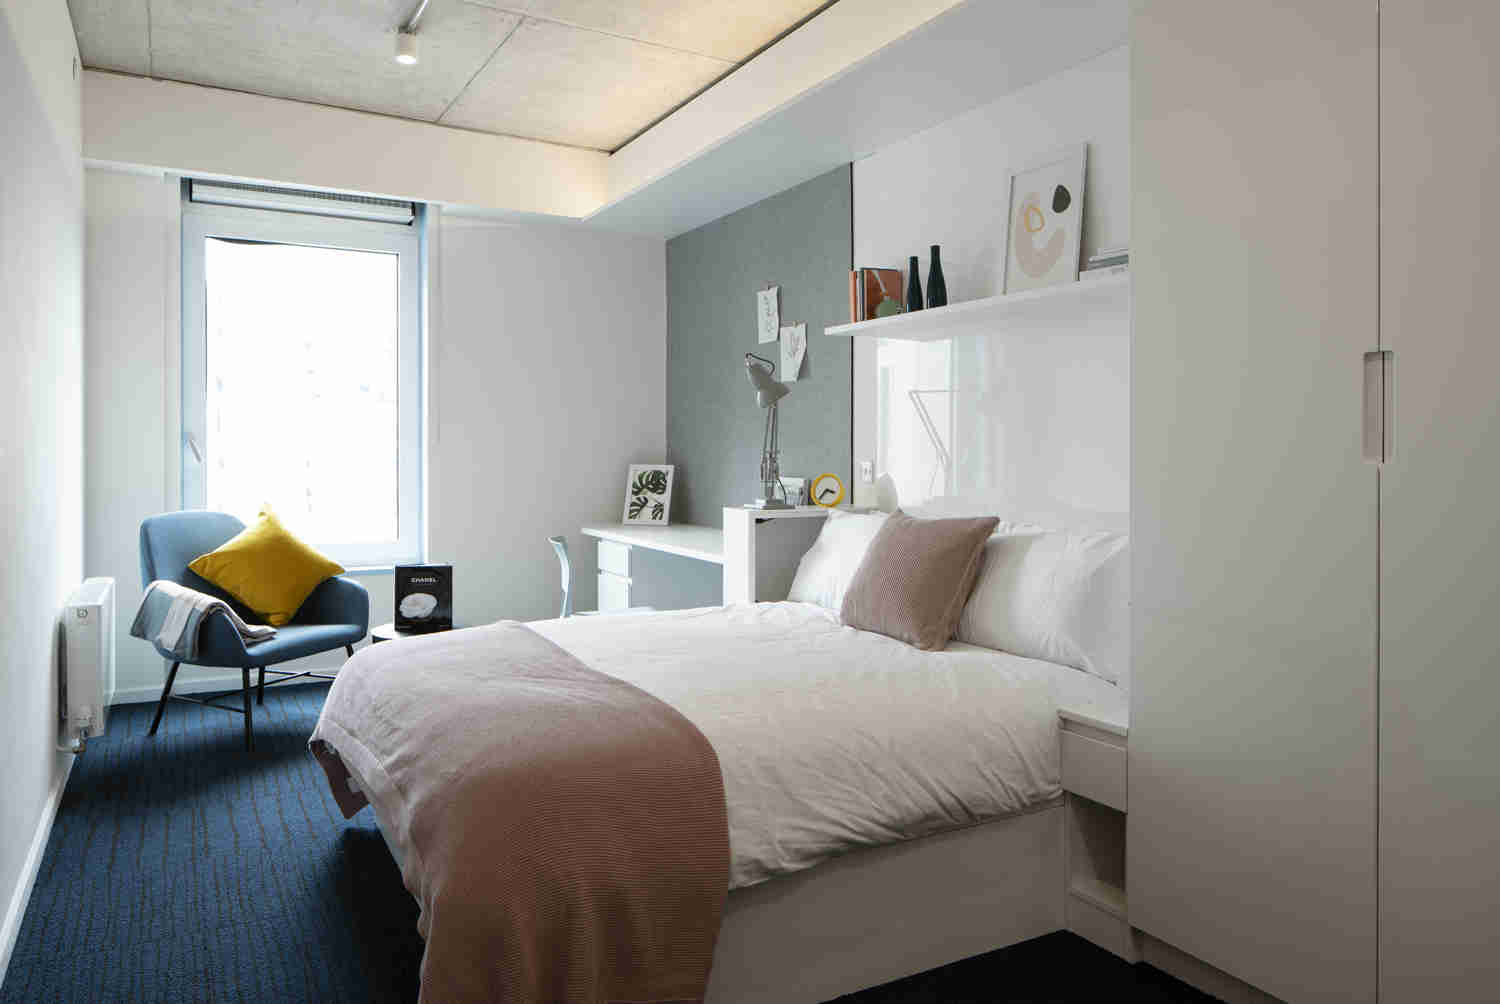 Scape Student Living accommodation